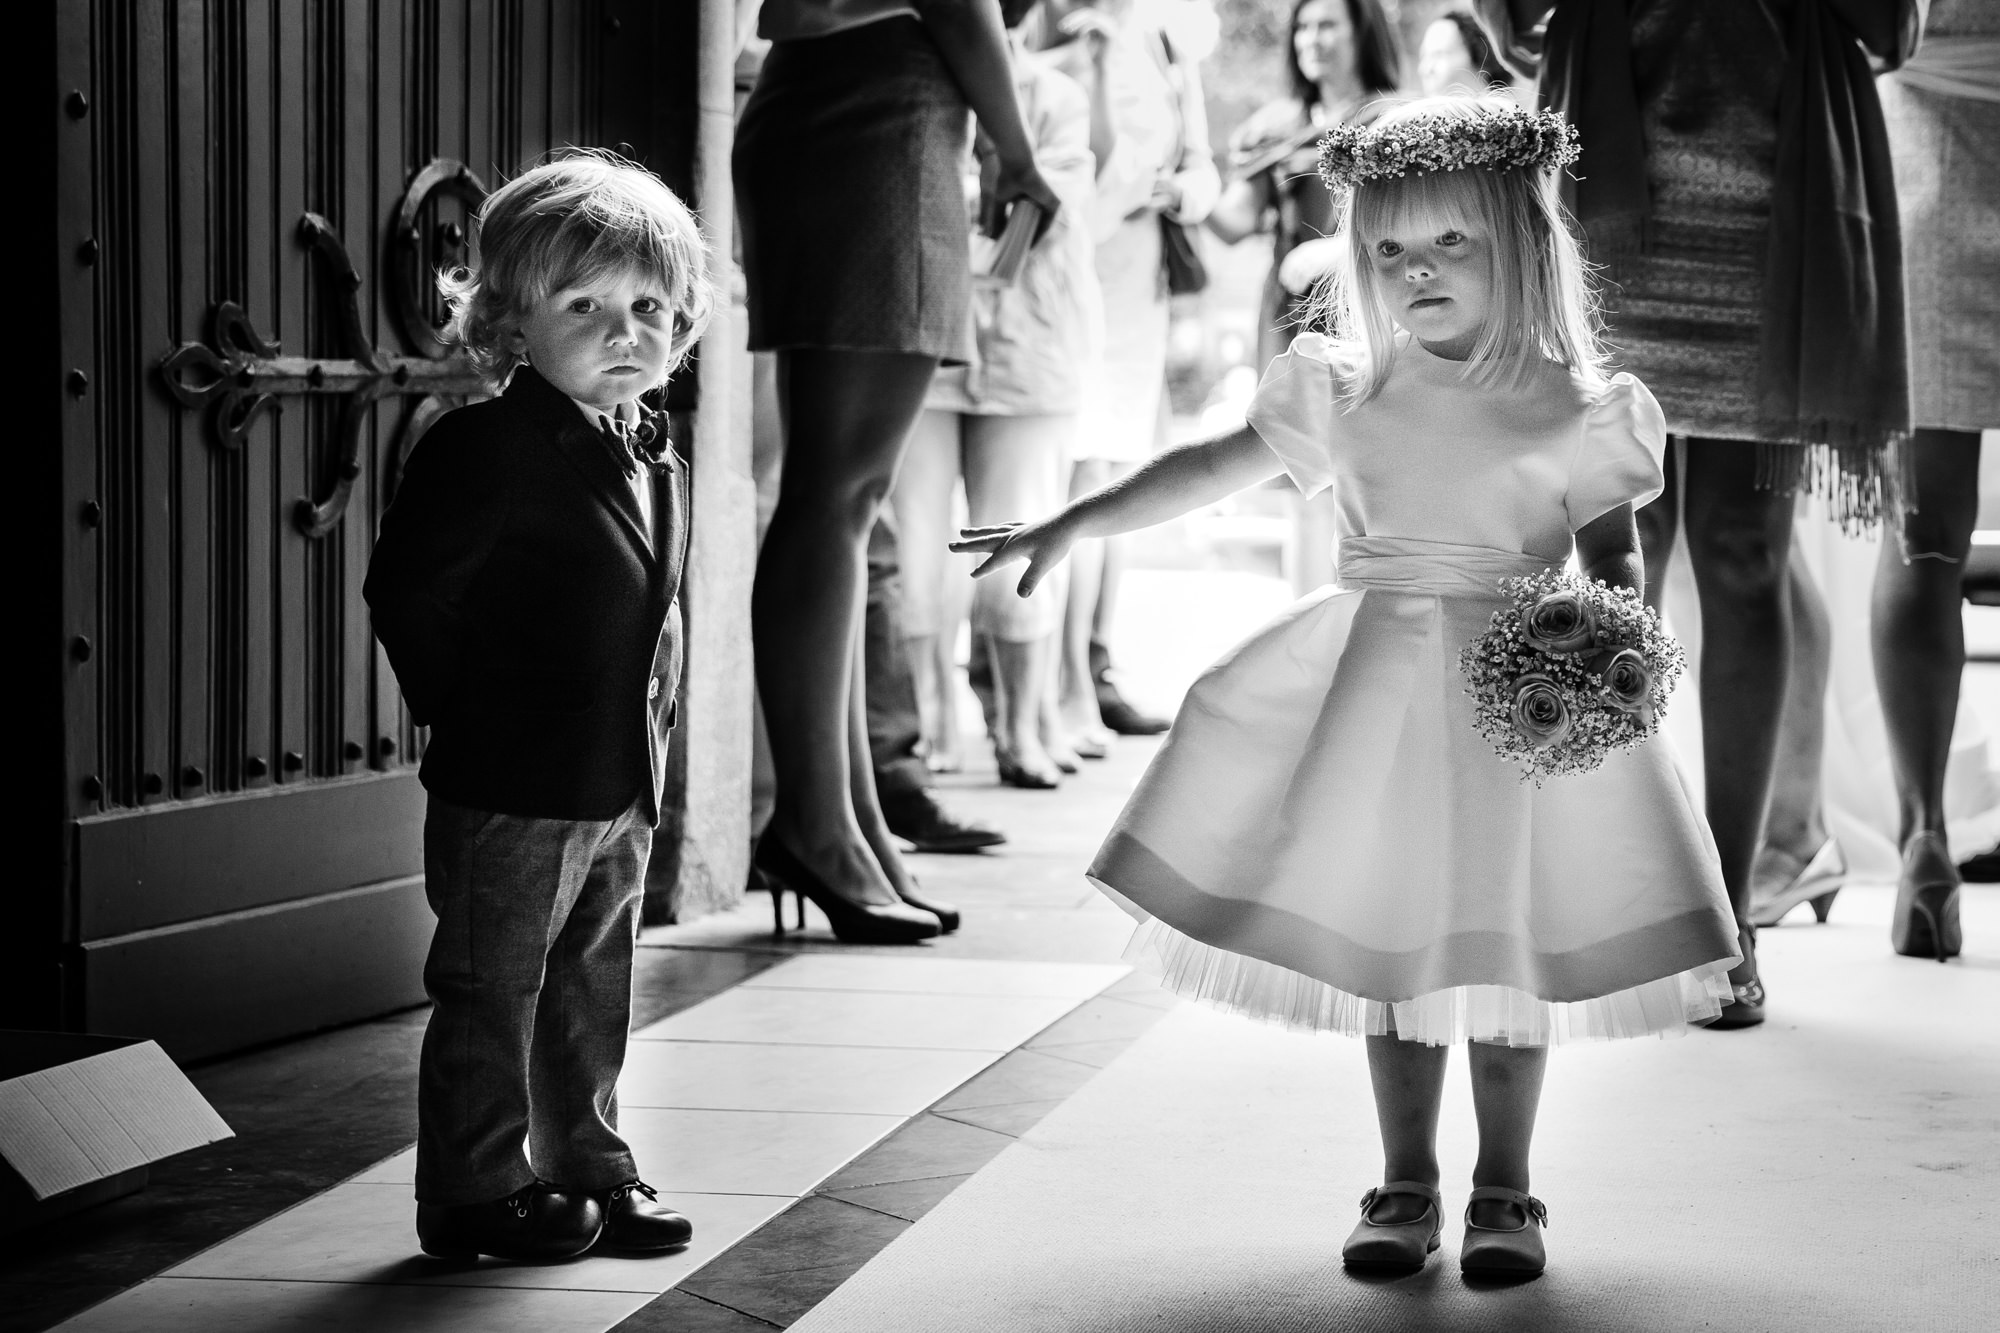 Adorable flower girl reaches for little boys hand - photo by Yves Schepers